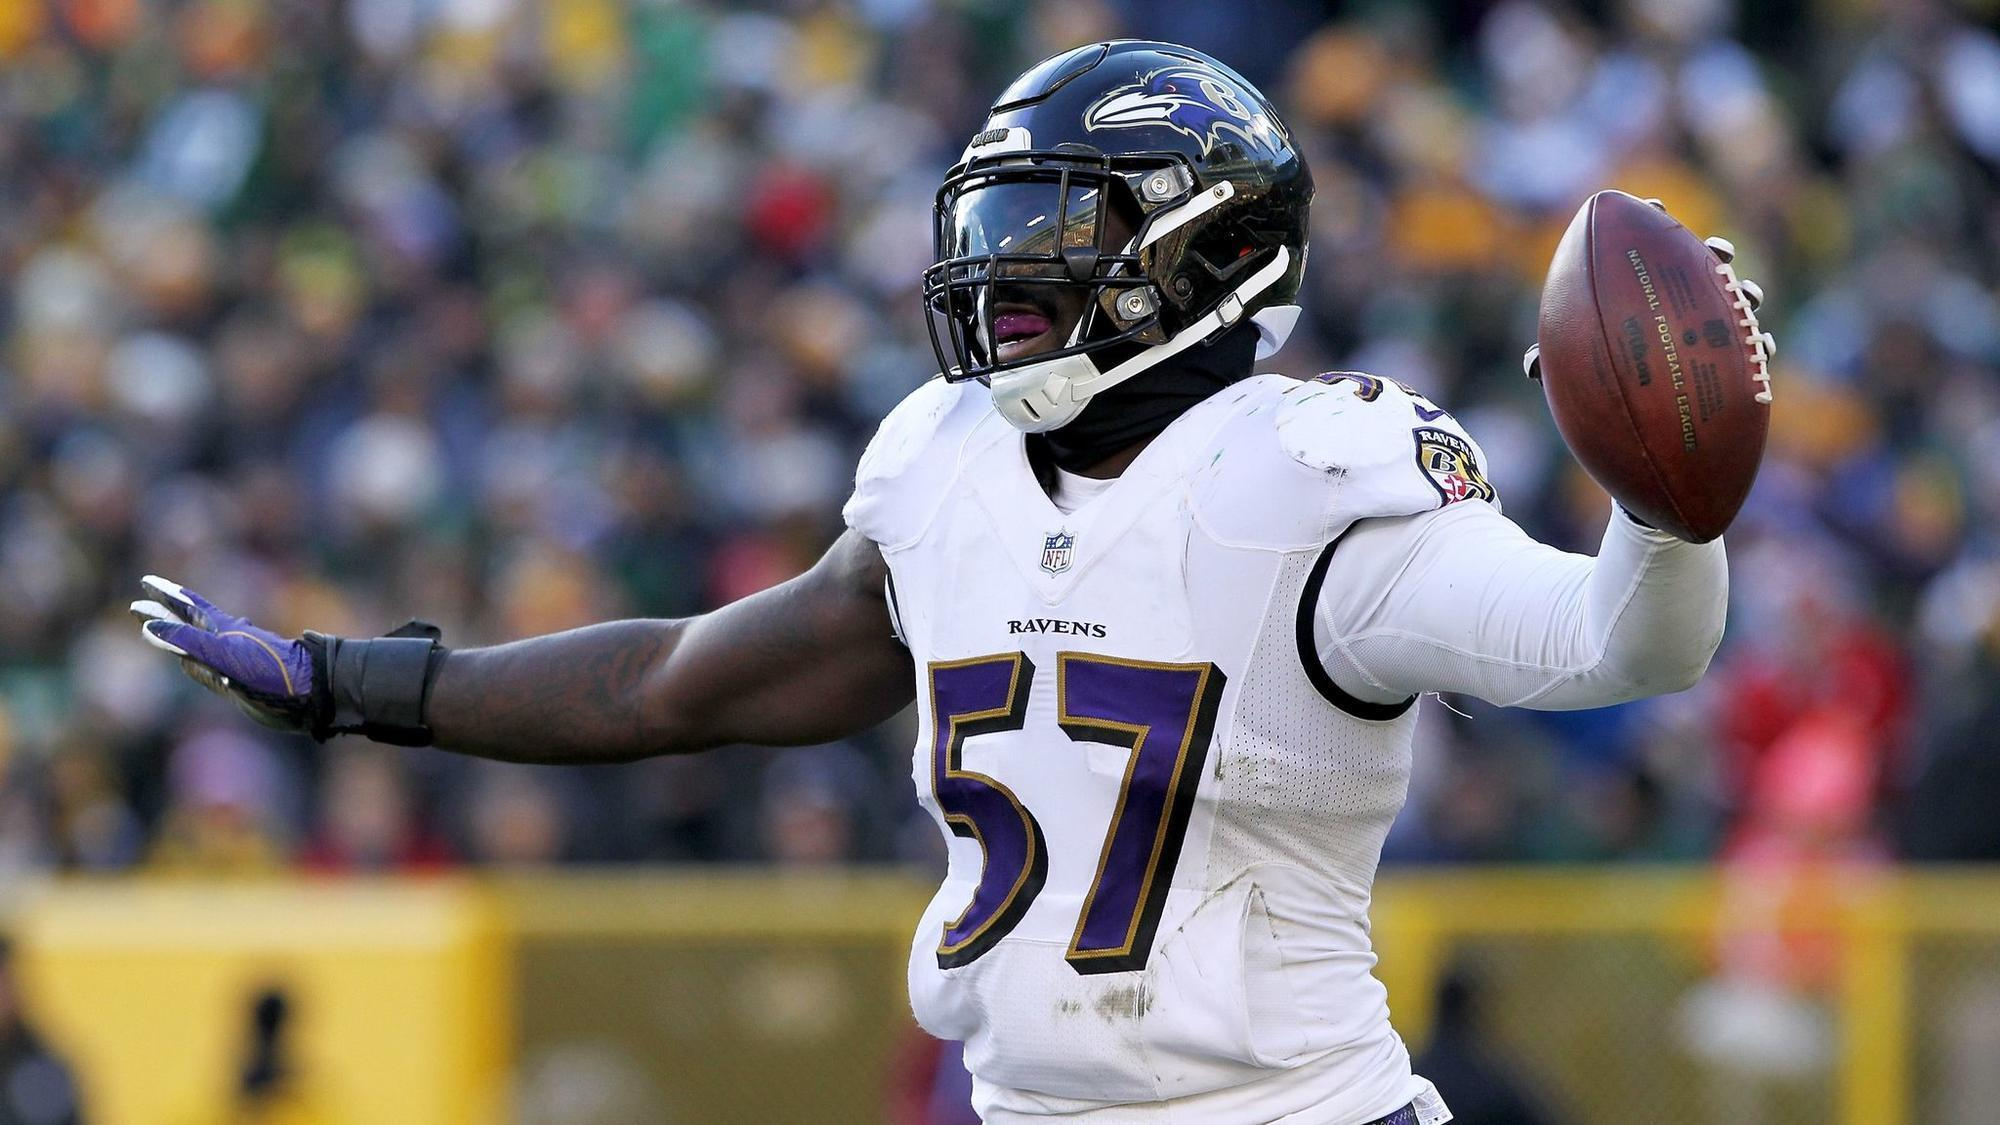 Ravens C J Mosley not worried about sprained ankle vows to